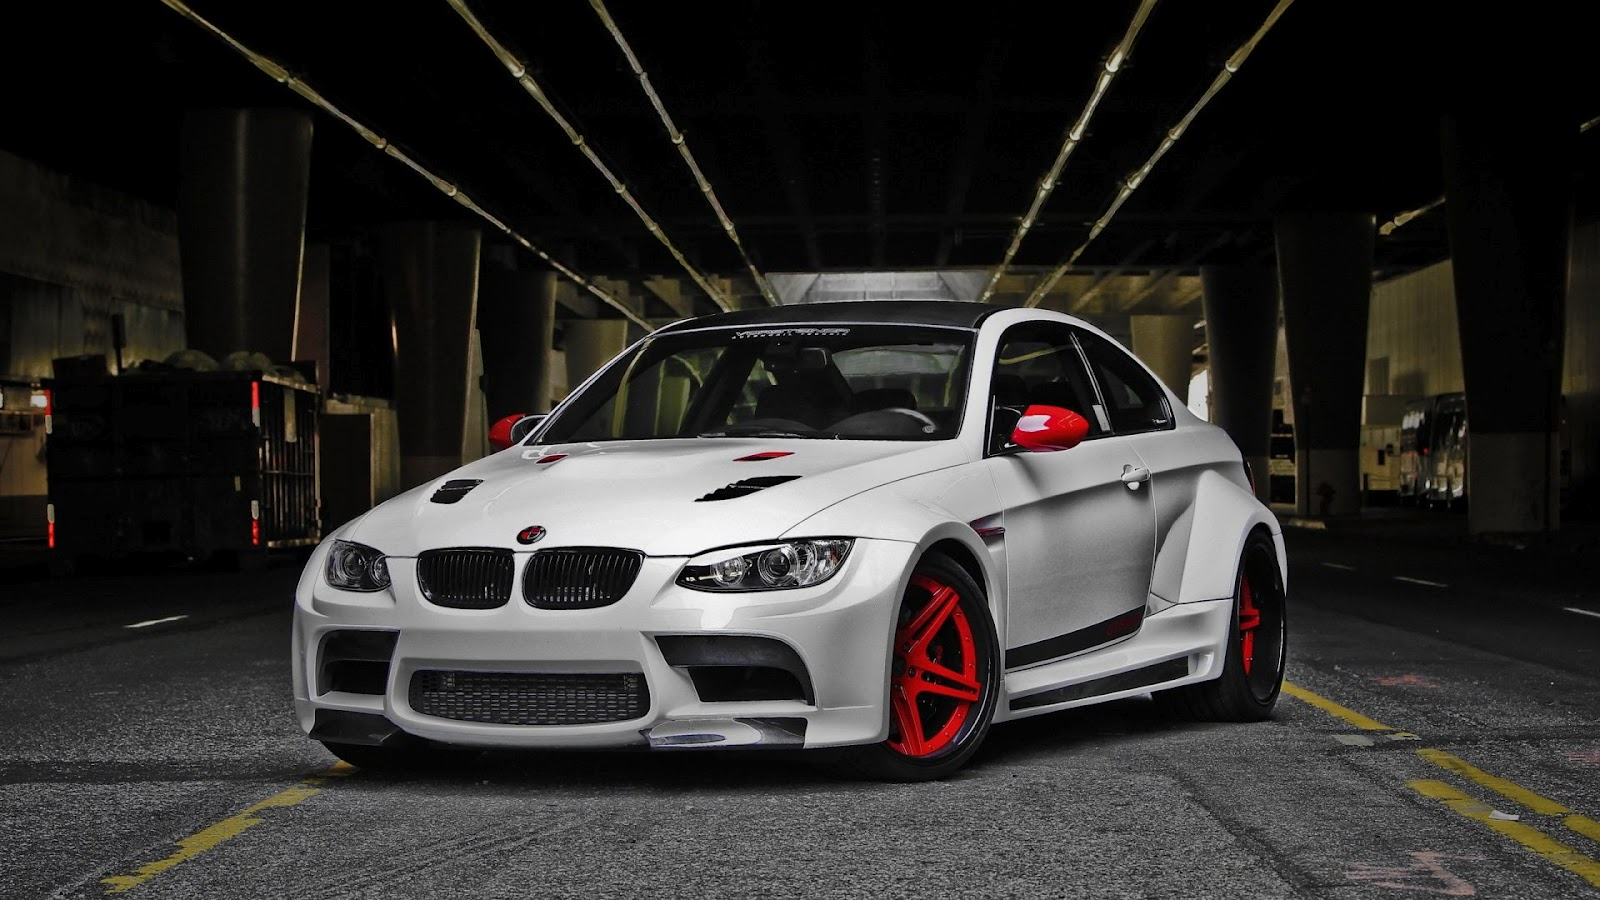 Free Hd Wallpapers Bmw M3 Wallpapers Hd